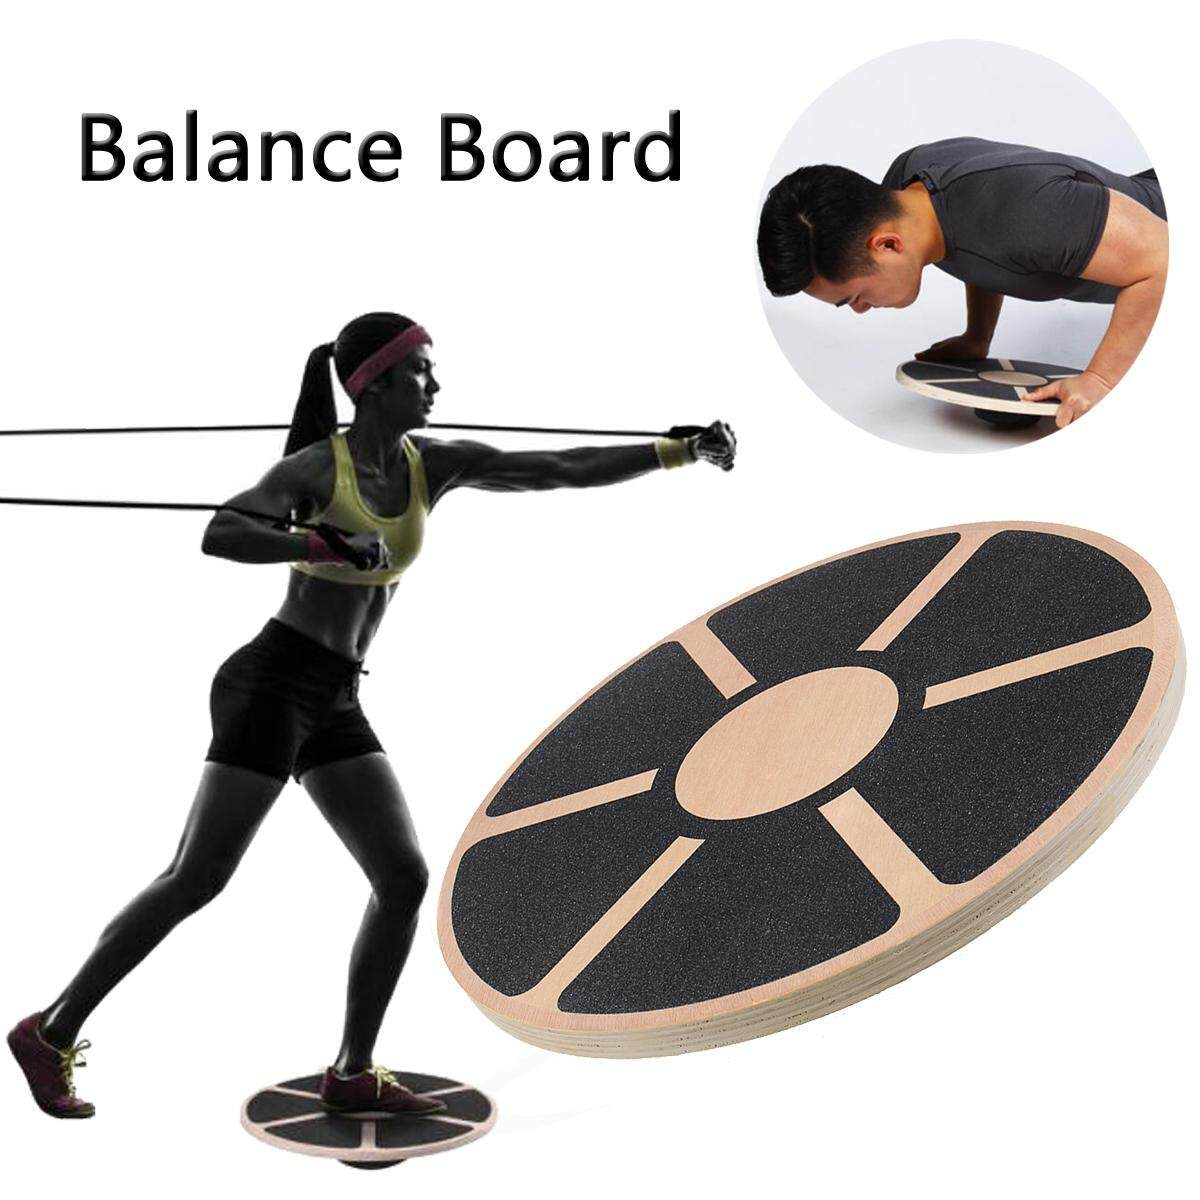 Letek Wooden Wobble Board Non-Slip Balance Training Exercise Rehabilitation Aid By Audew.